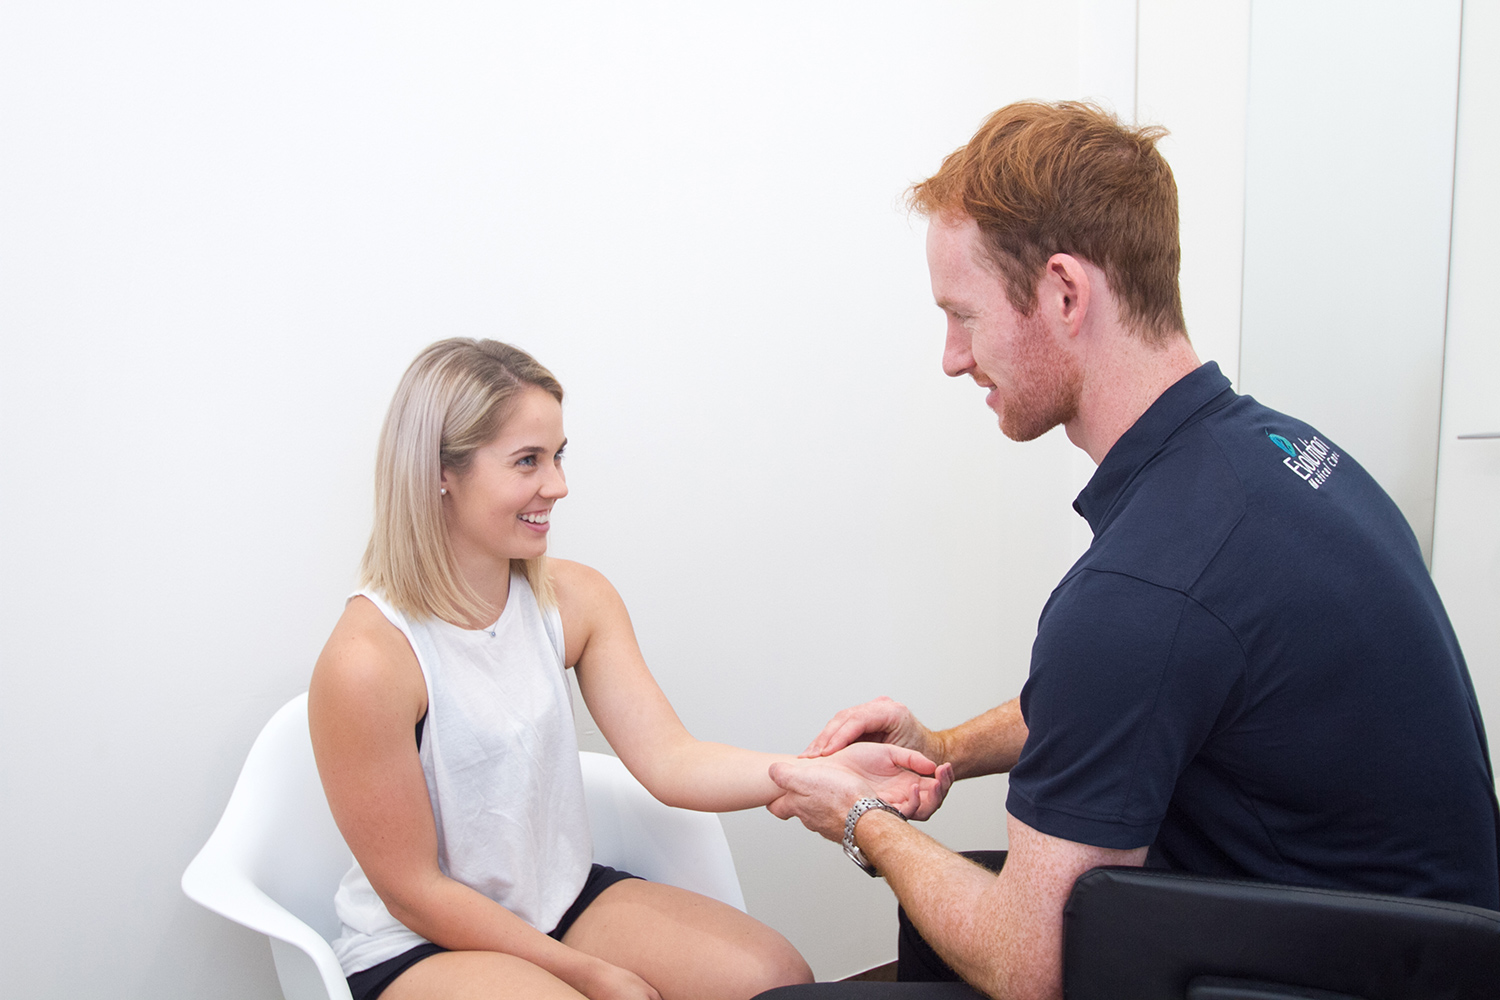 Practitioner Consulting With Anxiety Patient